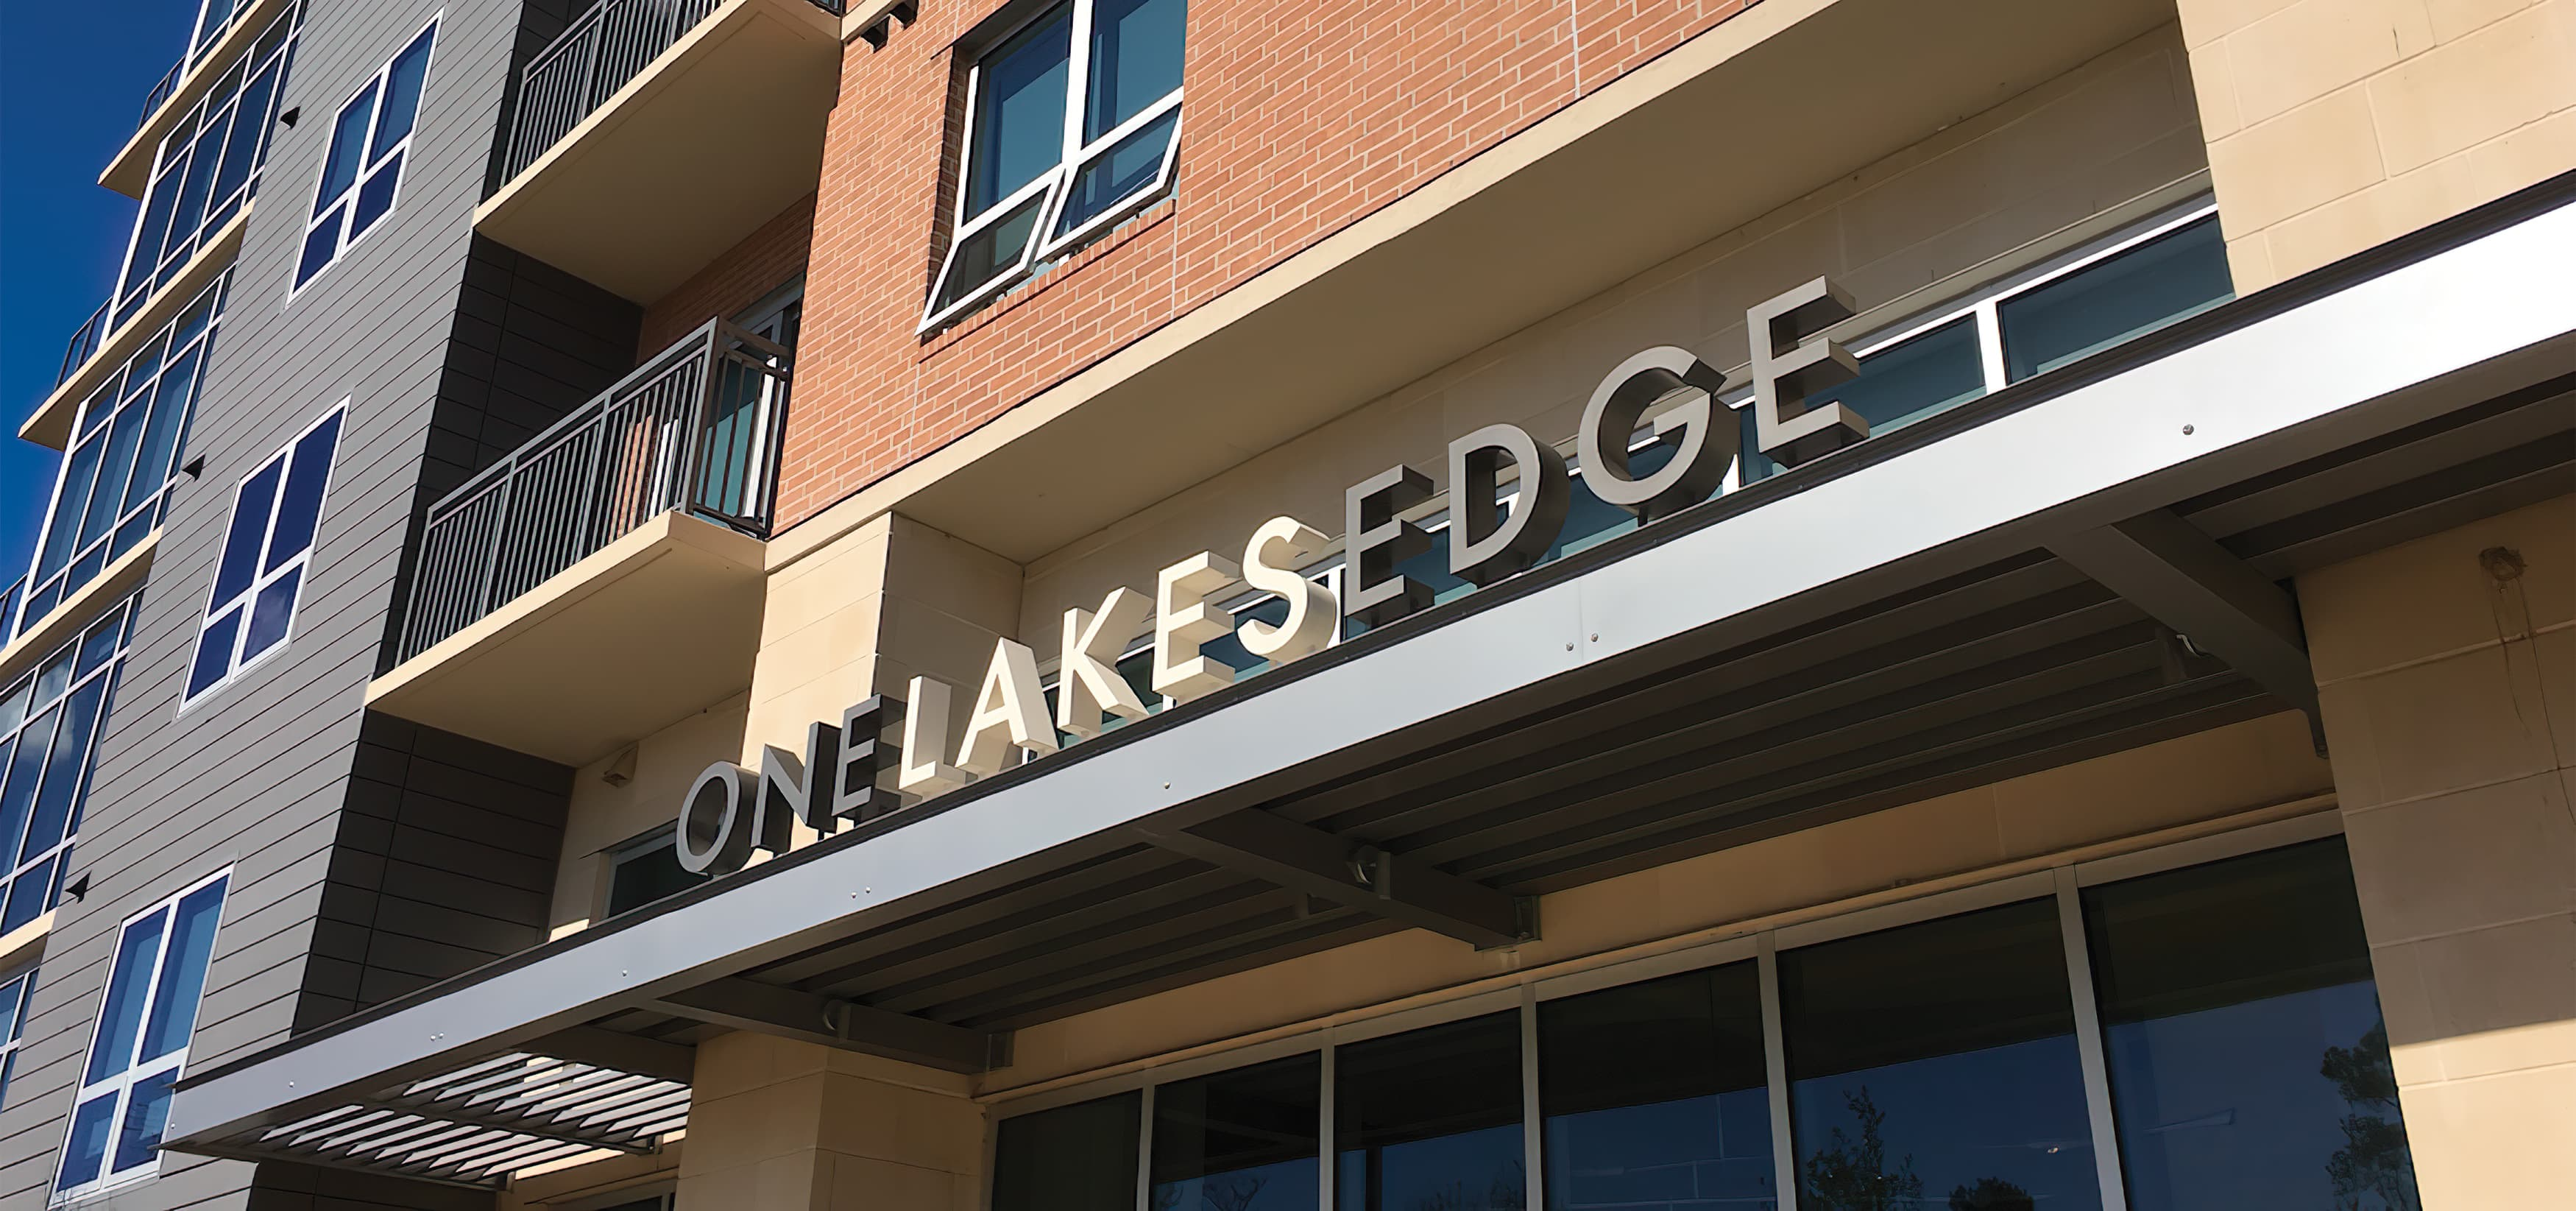 Hughes Landing, a mixed-use development in  The Woodlands, Texas. Building Signage. Project Signage. Canopy Signage.